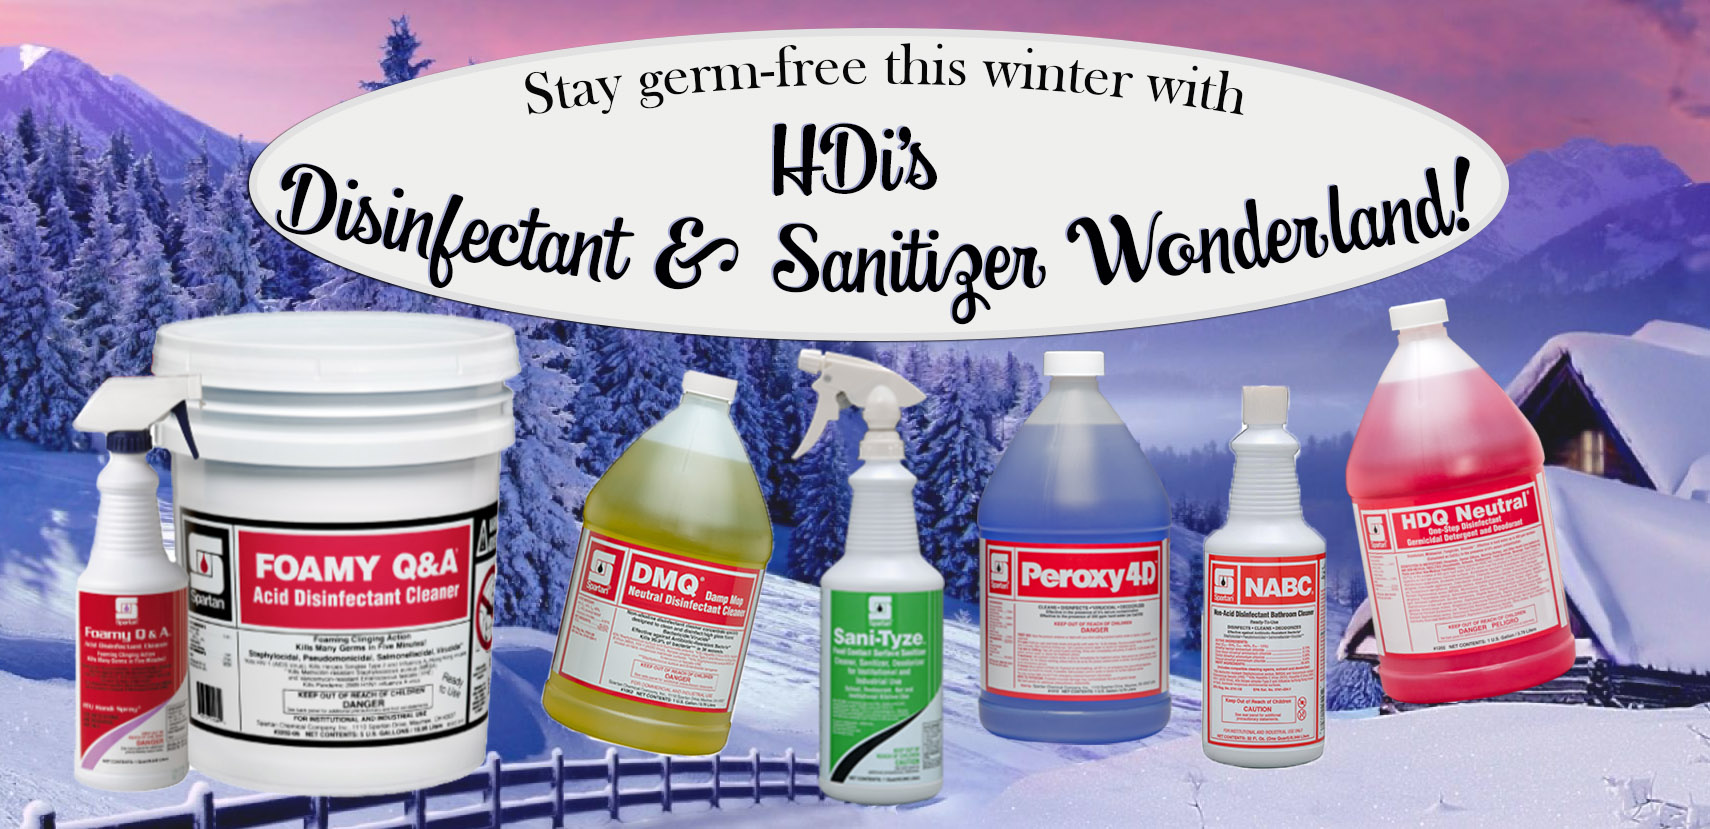 HDi Disinfectant Wonderland